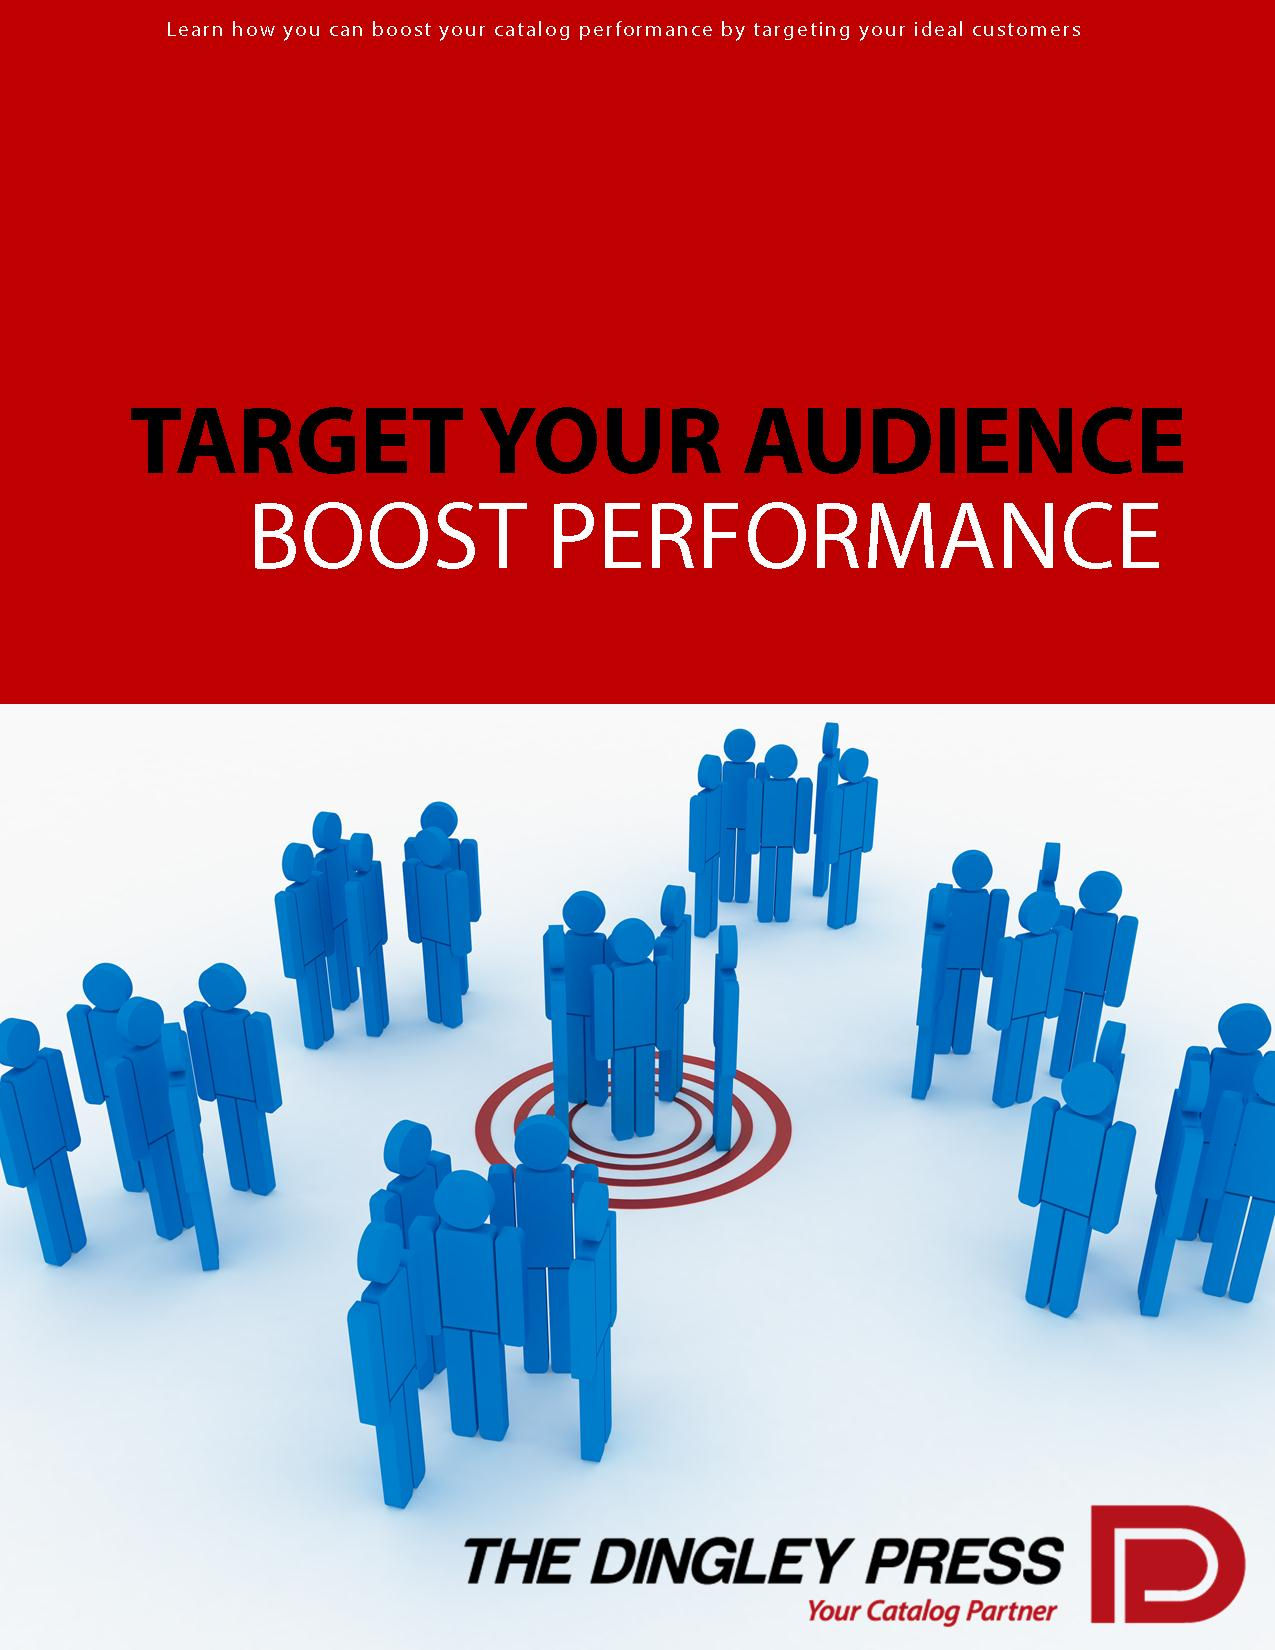 New White Paper!! Target Your Audience & Boost Performance